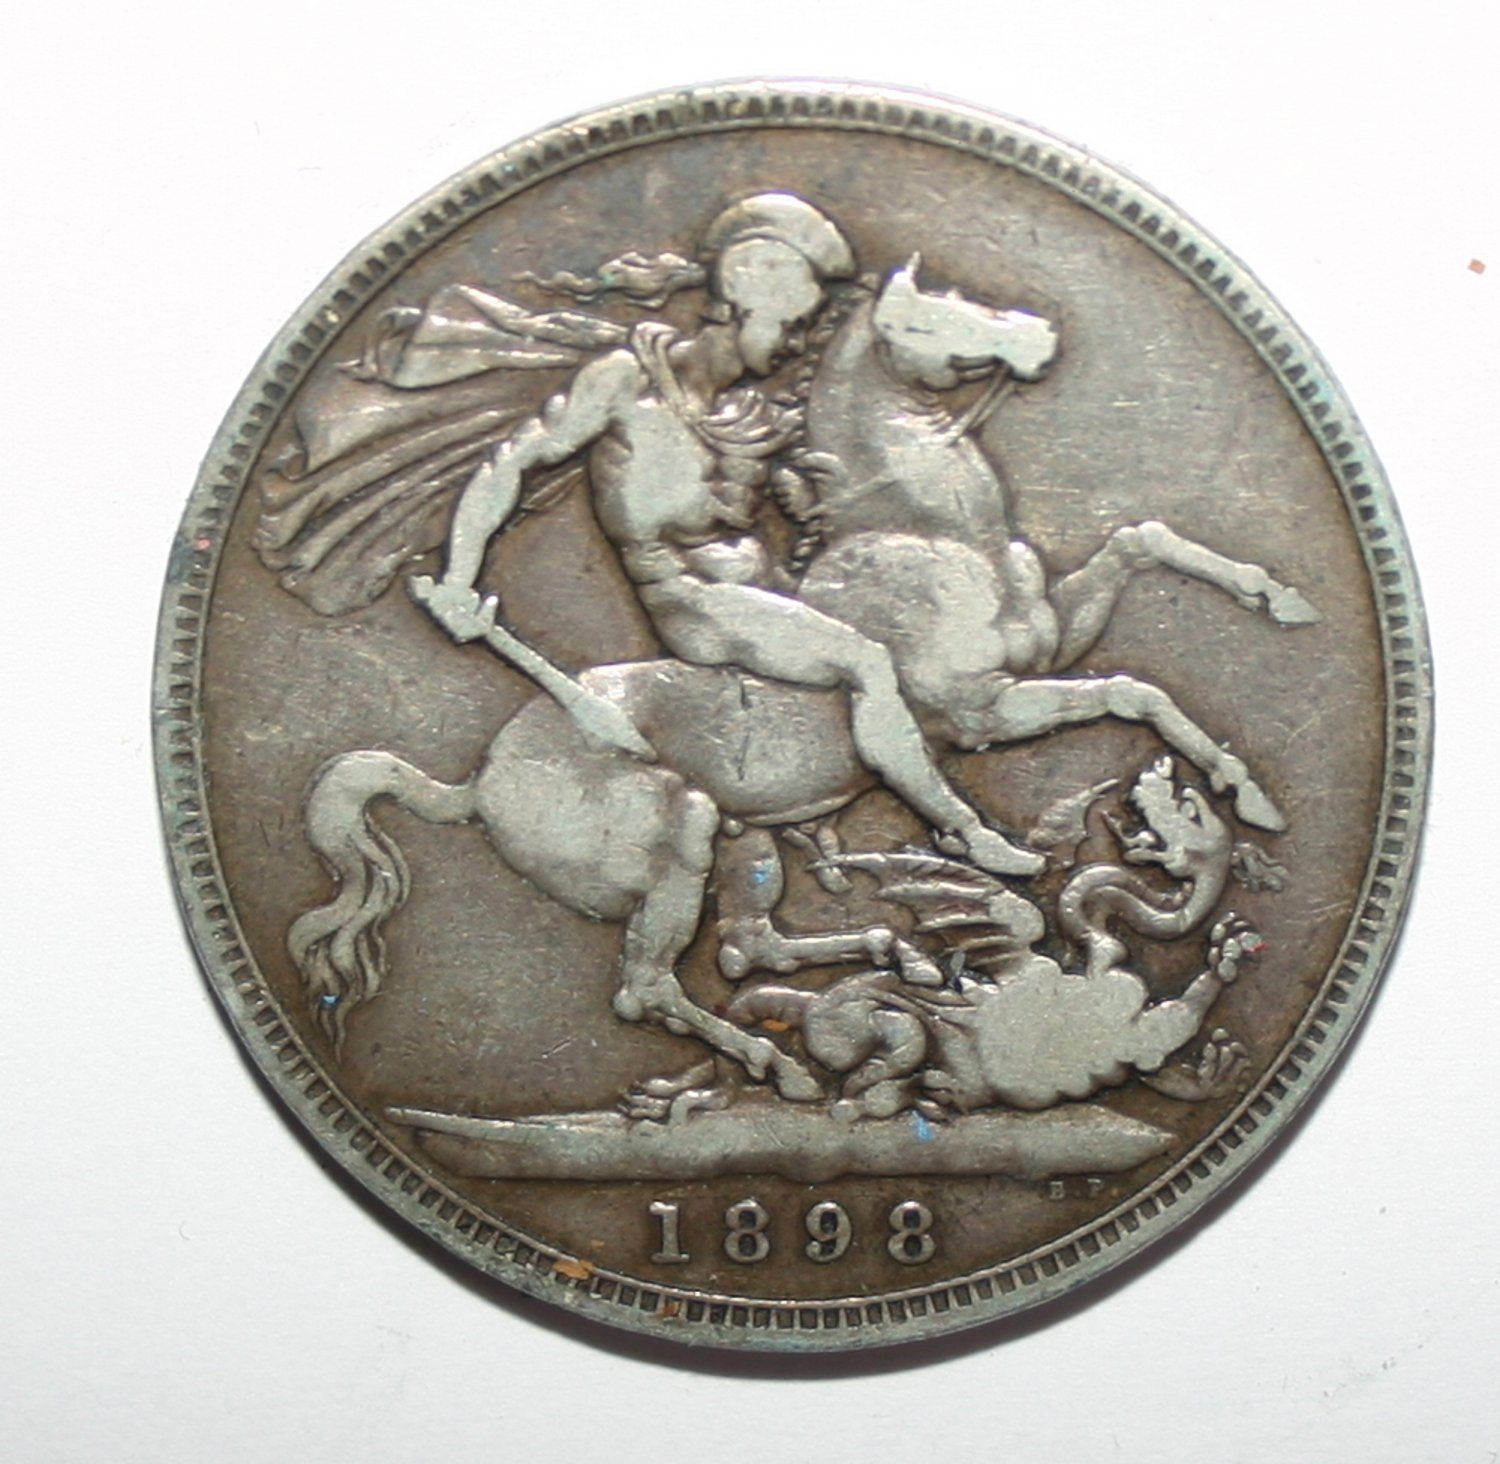 Queen Victoria LXII 1898 Silver George and Dragon Crown Coin